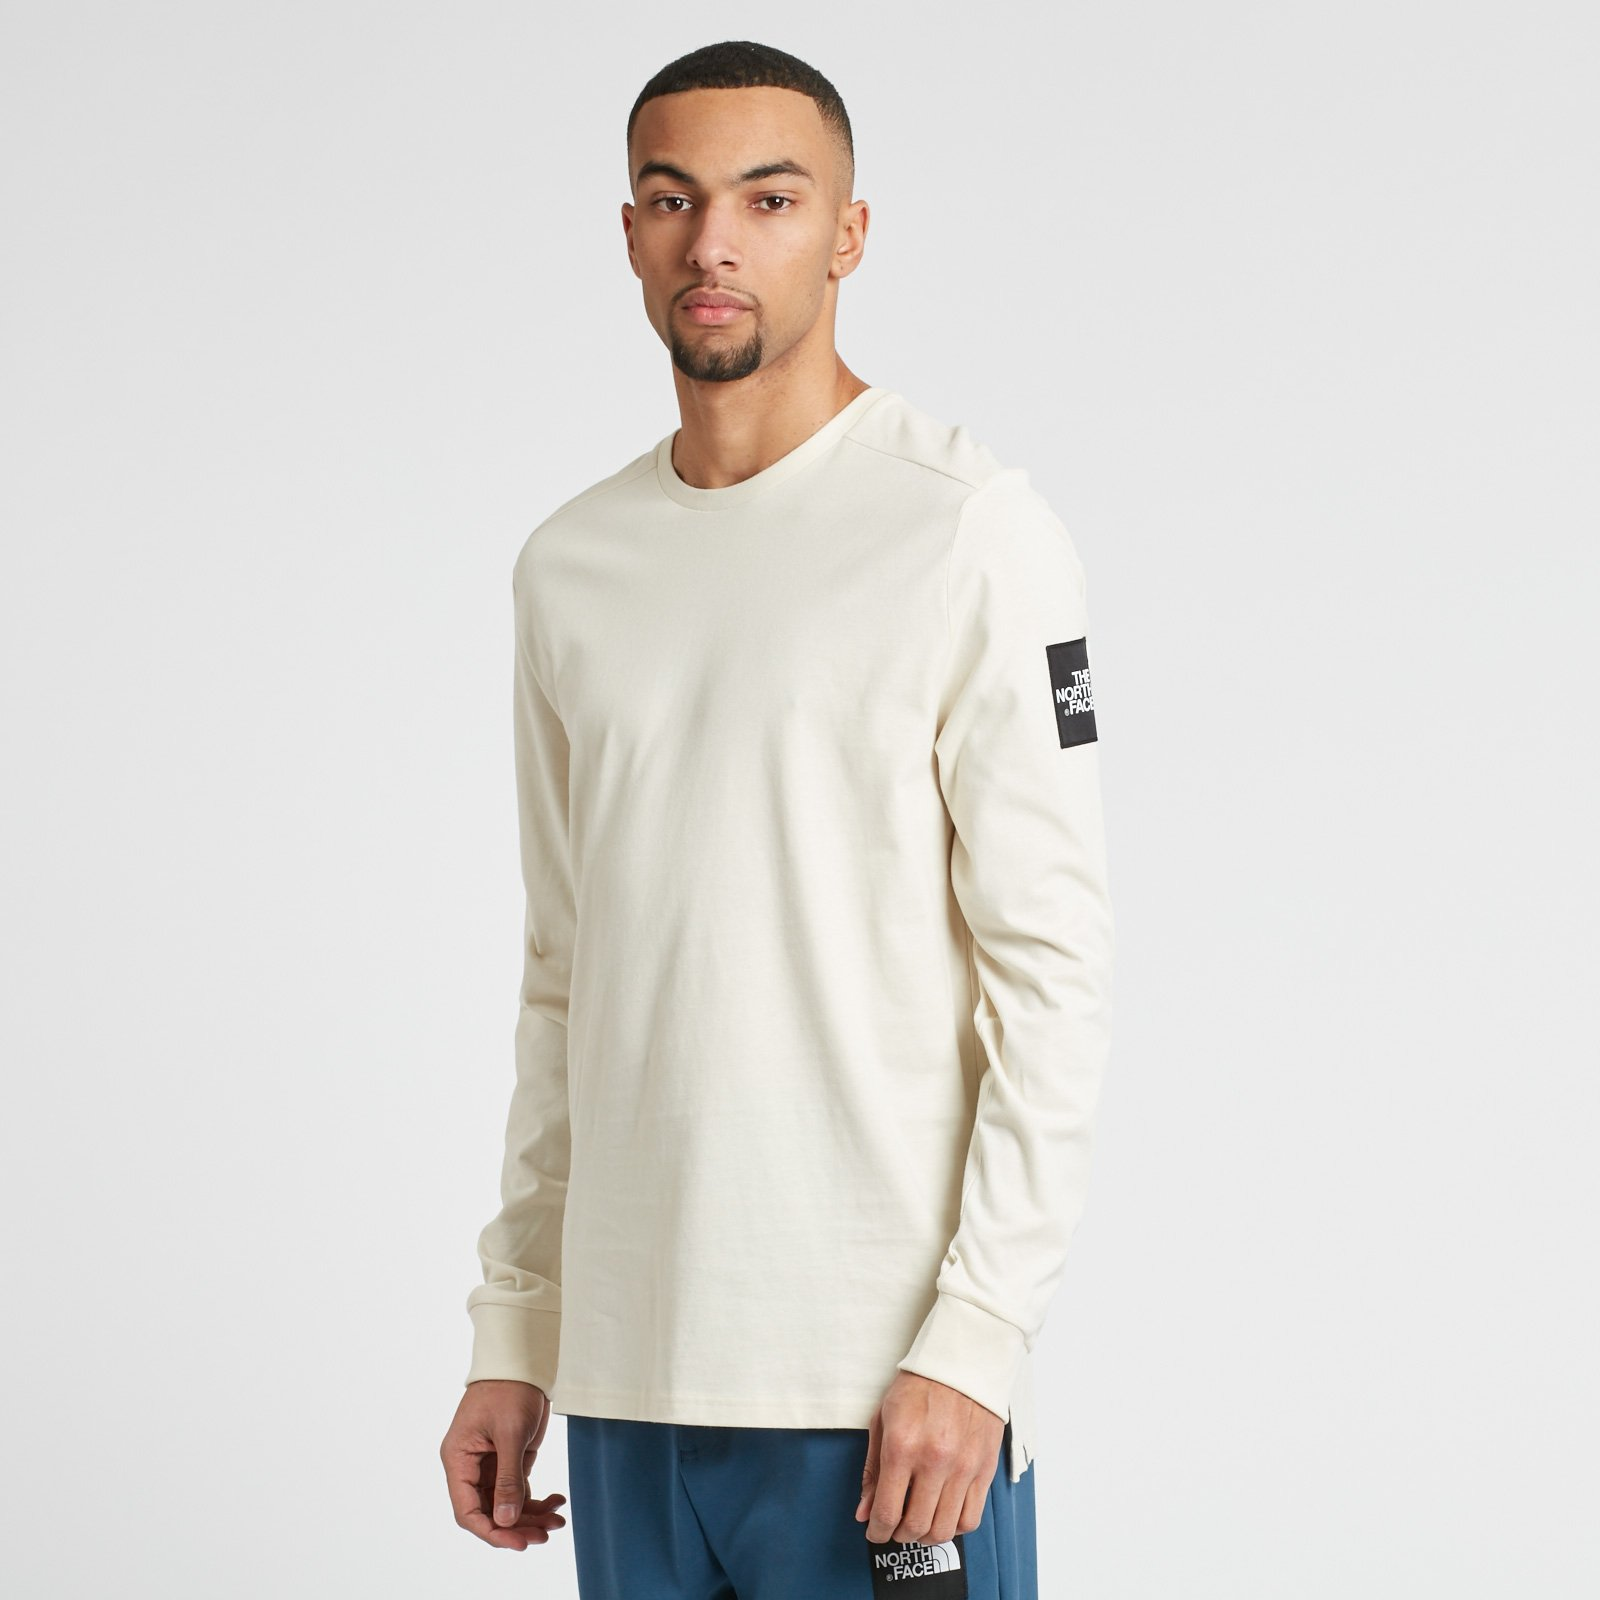 750c0dc699 The North Face L/S Fine 2 Tee - T93bph11p - Sneakersnstuff ...